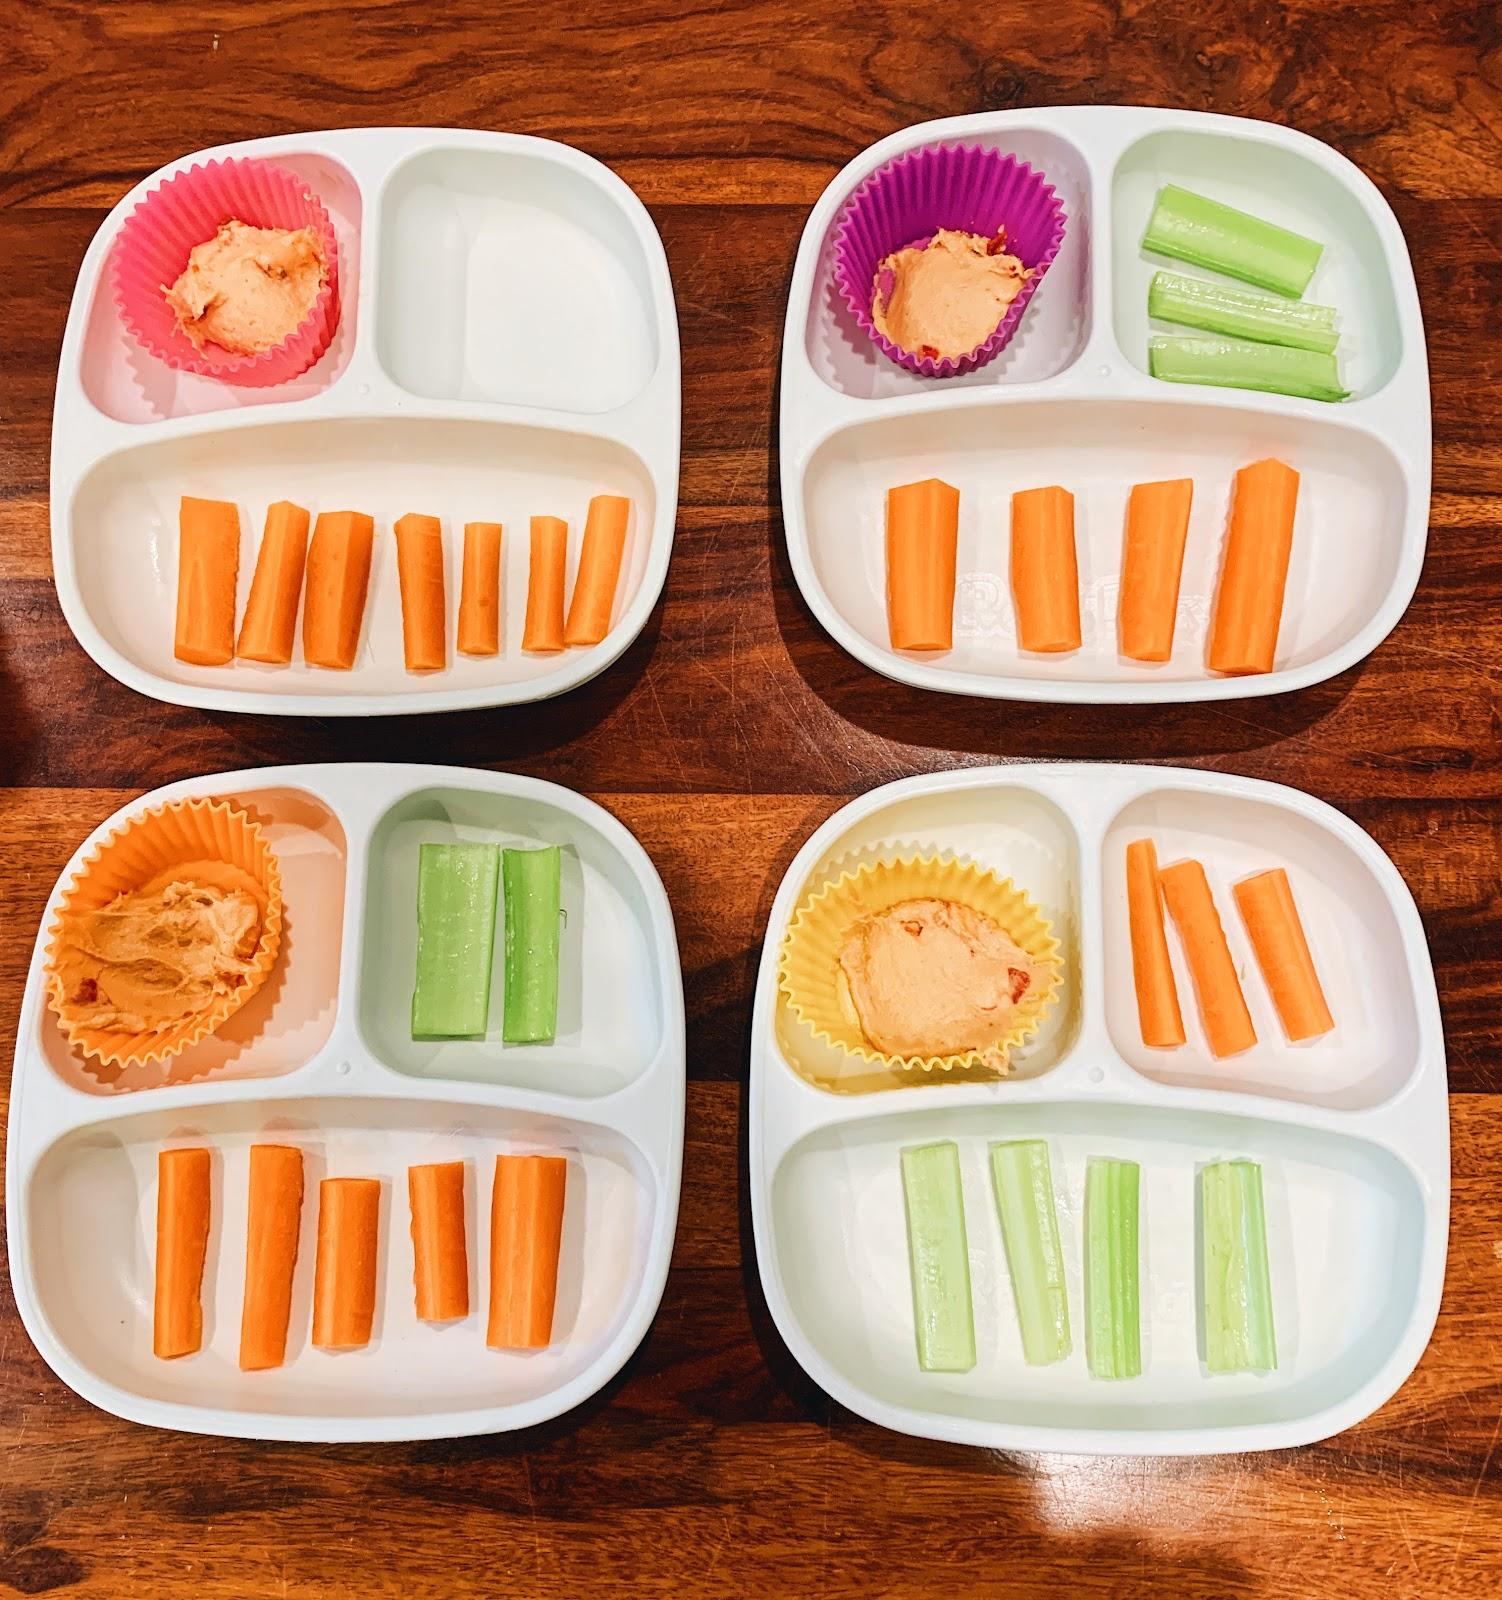 One snack tray has hummus and 7 carrots. No celery. Another tray has hummus, 4 carrots, and 3 celery sticks. A third snack tray has hummus, 5 carrots, and 2 celery sticks. The last tray has hummus, 3 carrots and 4 celery sticks.